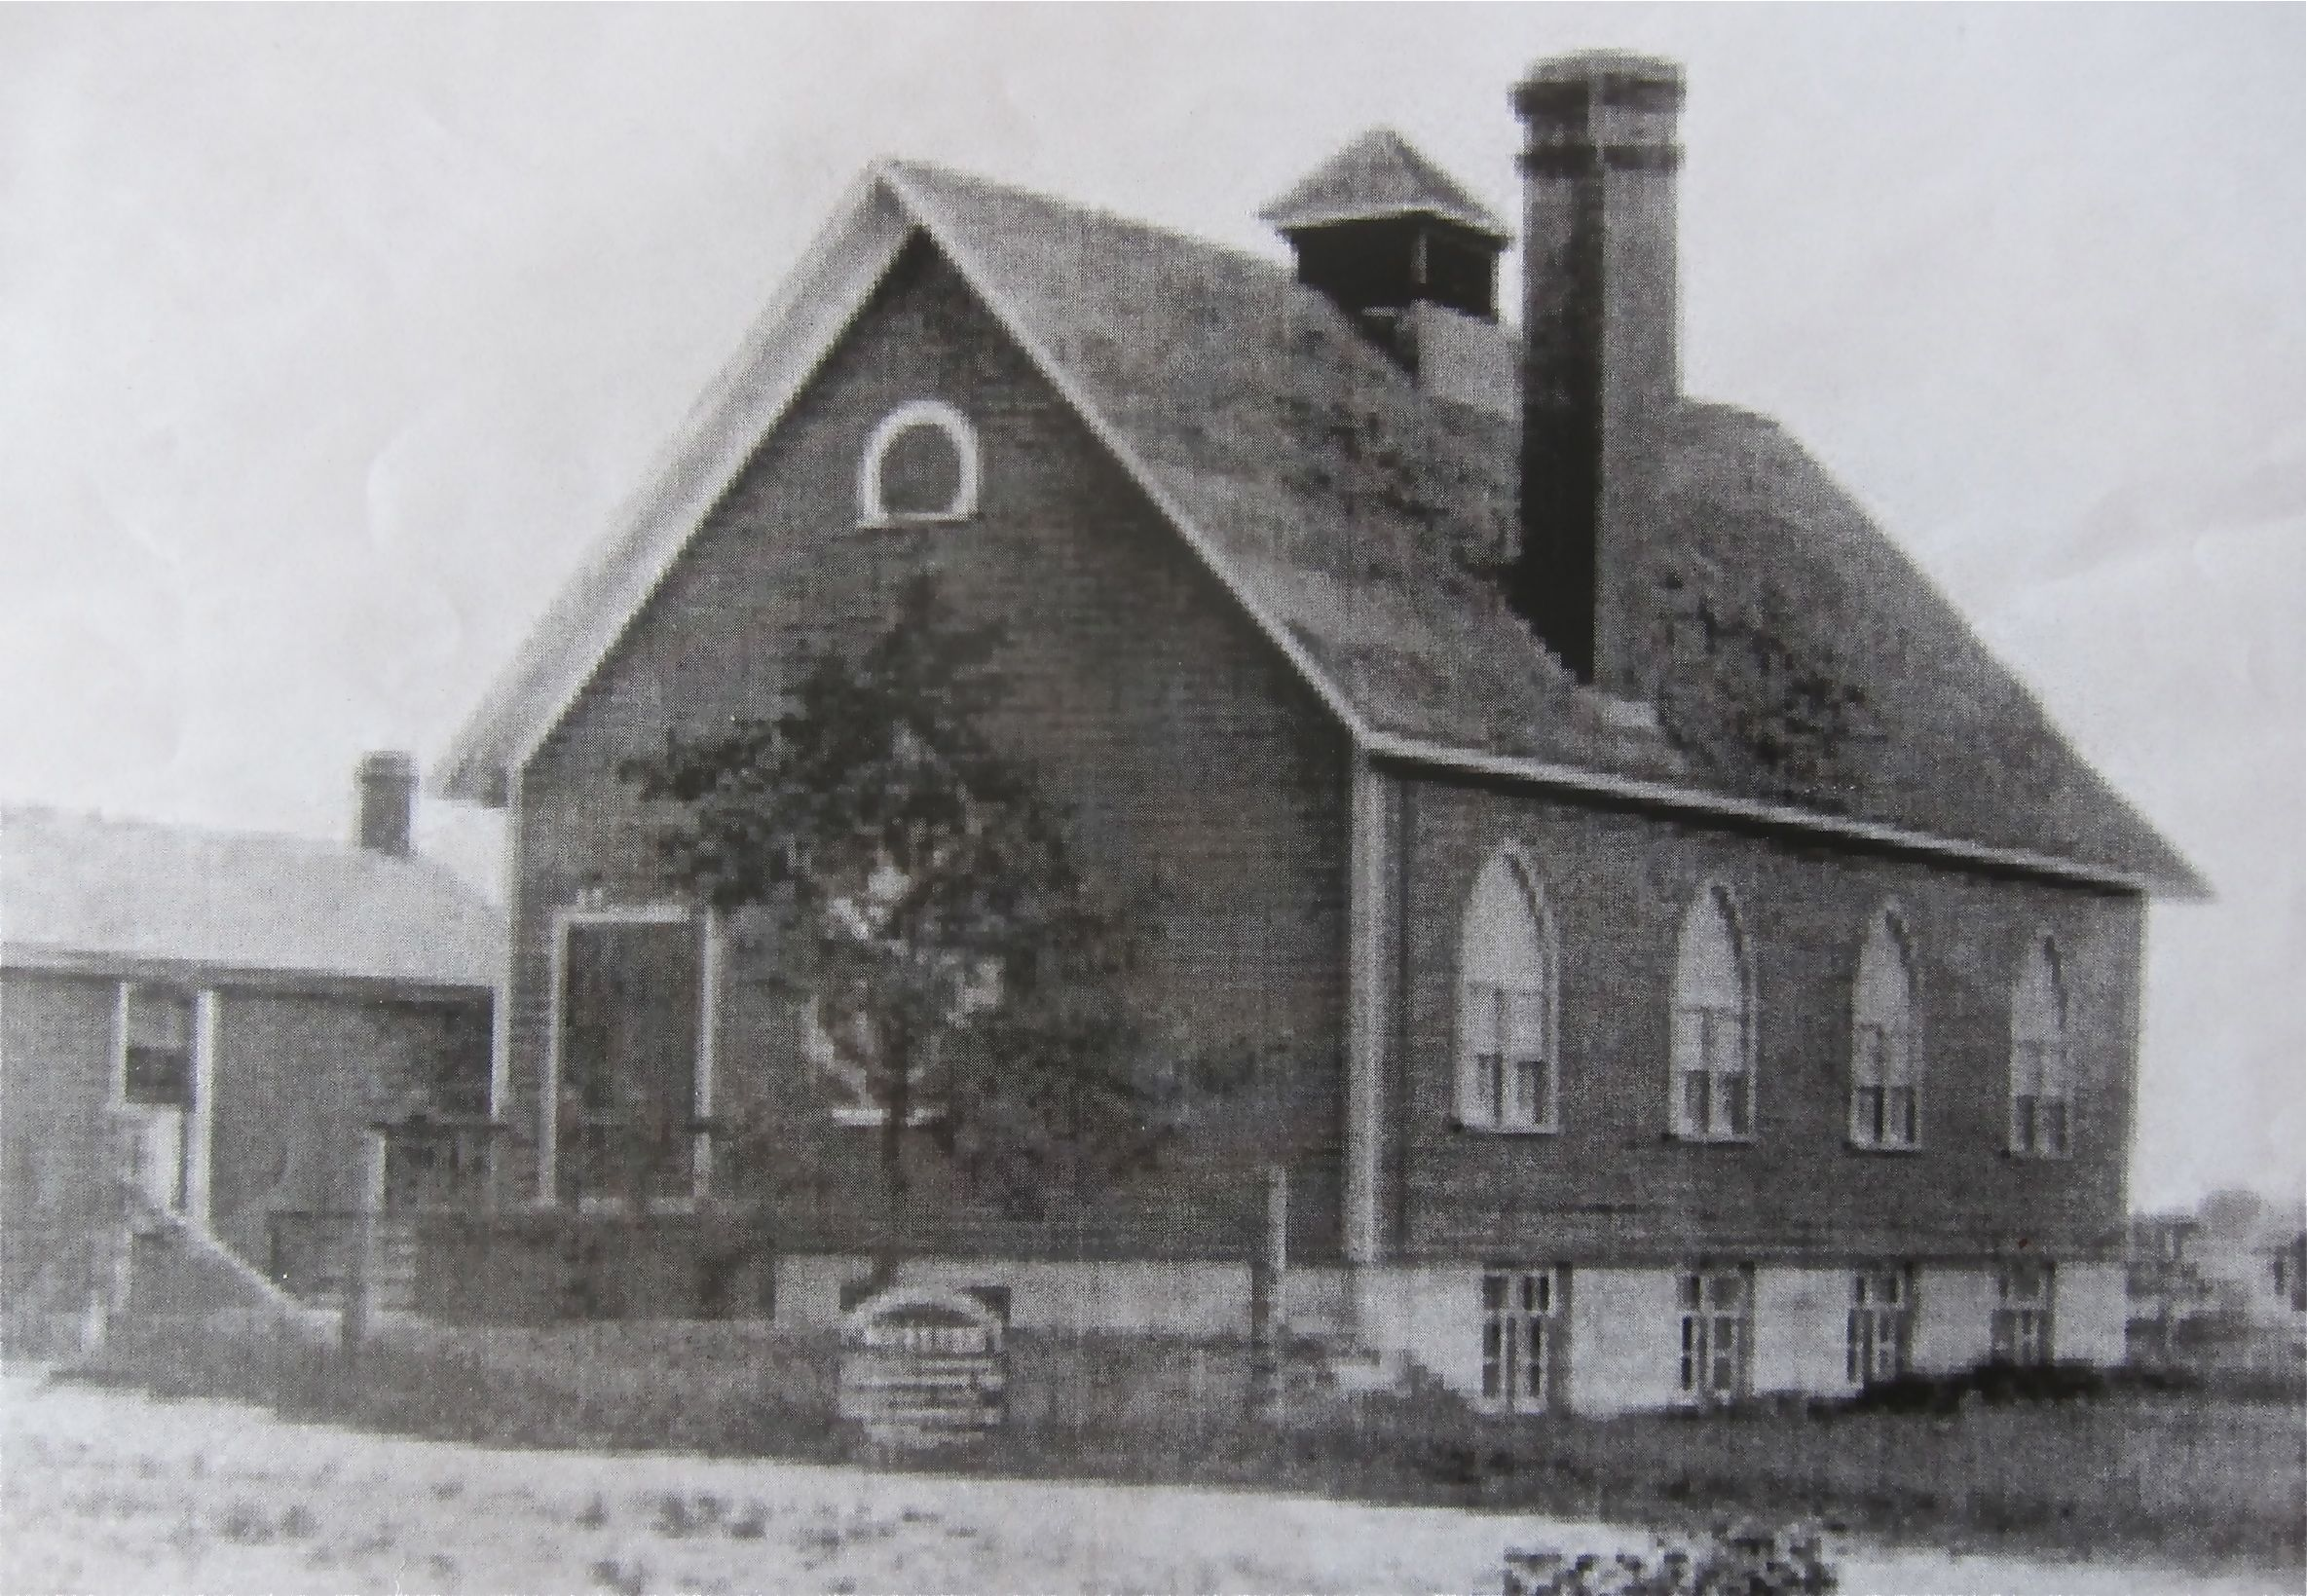 The Danforth Mennonite Church bought land east of Woodbine (Third Line East) in 1907, making it the only single land user on our walk that the predates the annexation of Upper Midway by the city in 1909. This a a 1911 photo.